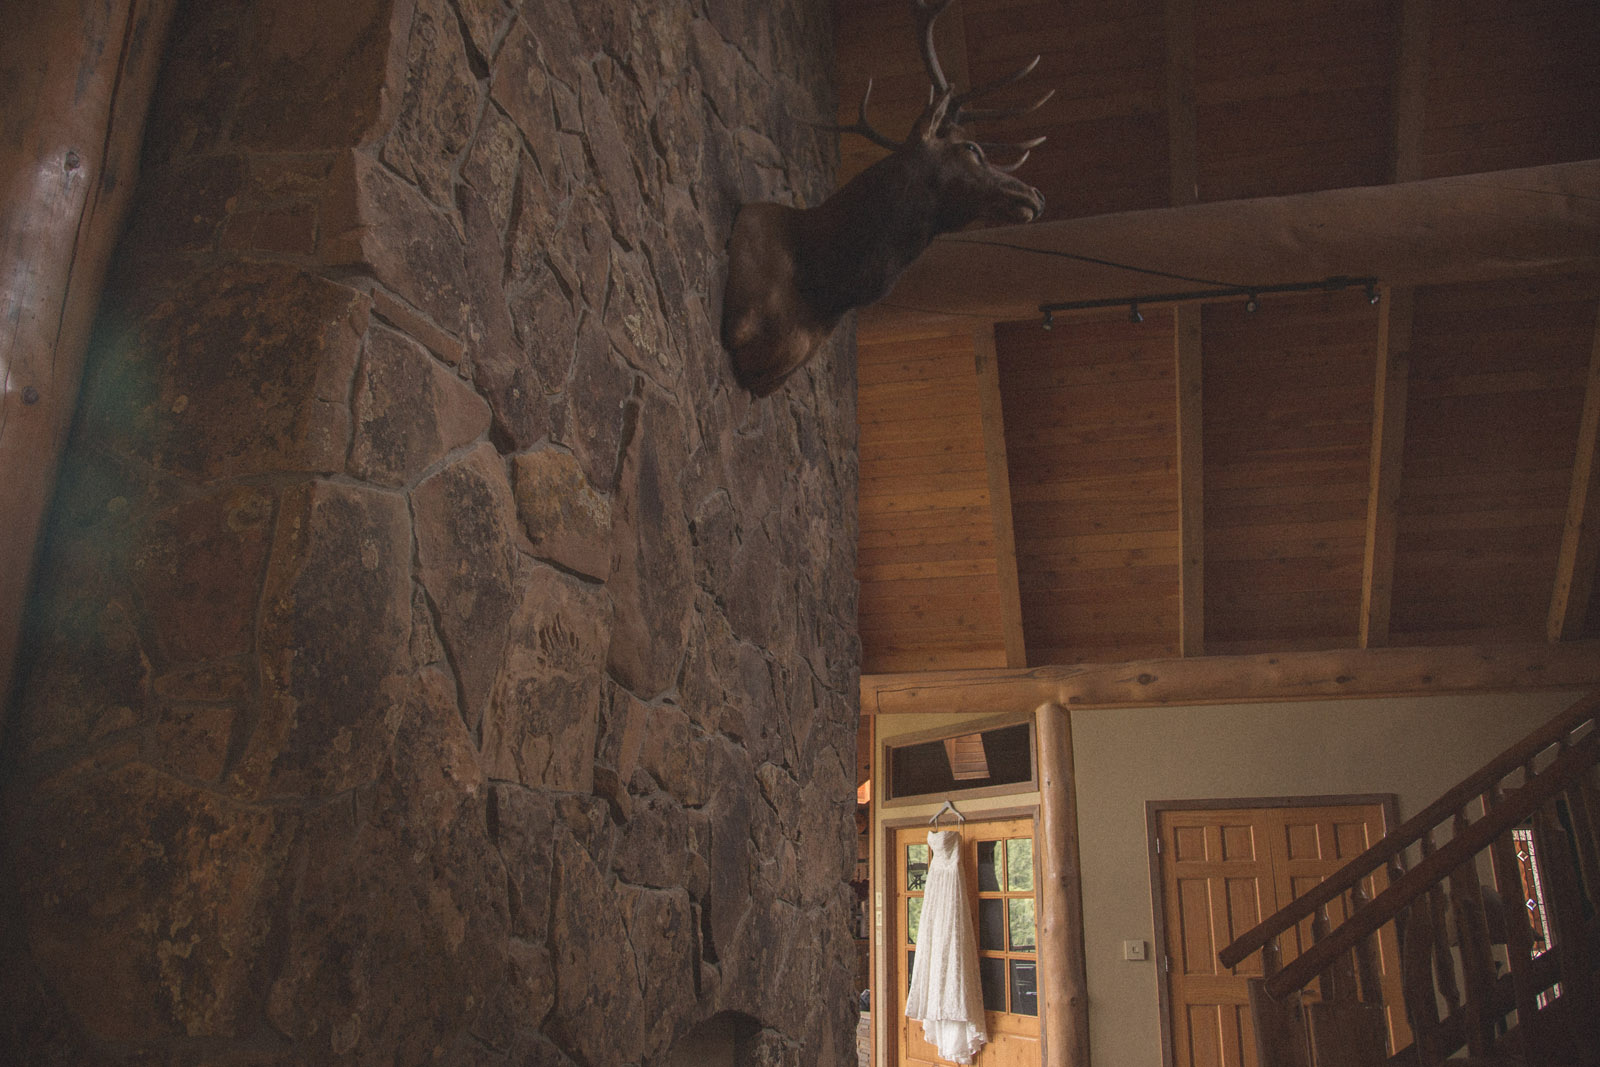 015-wedding-dress-deer-hunting-stairs-light-ambient